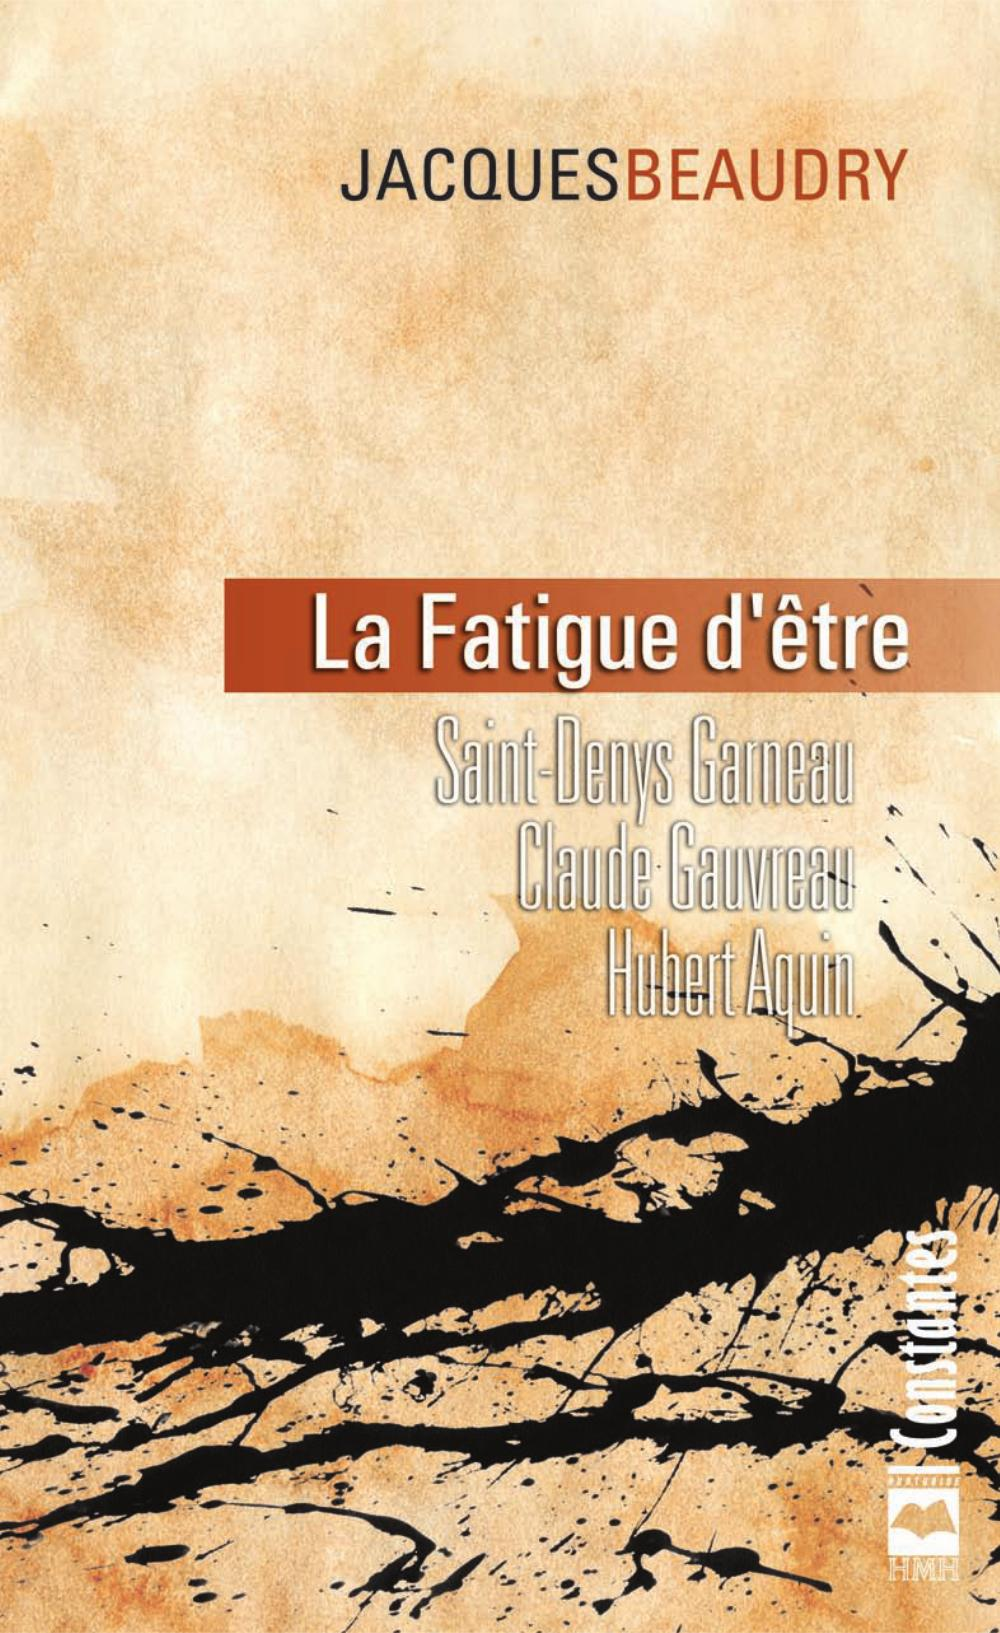 La Fatigue d'être